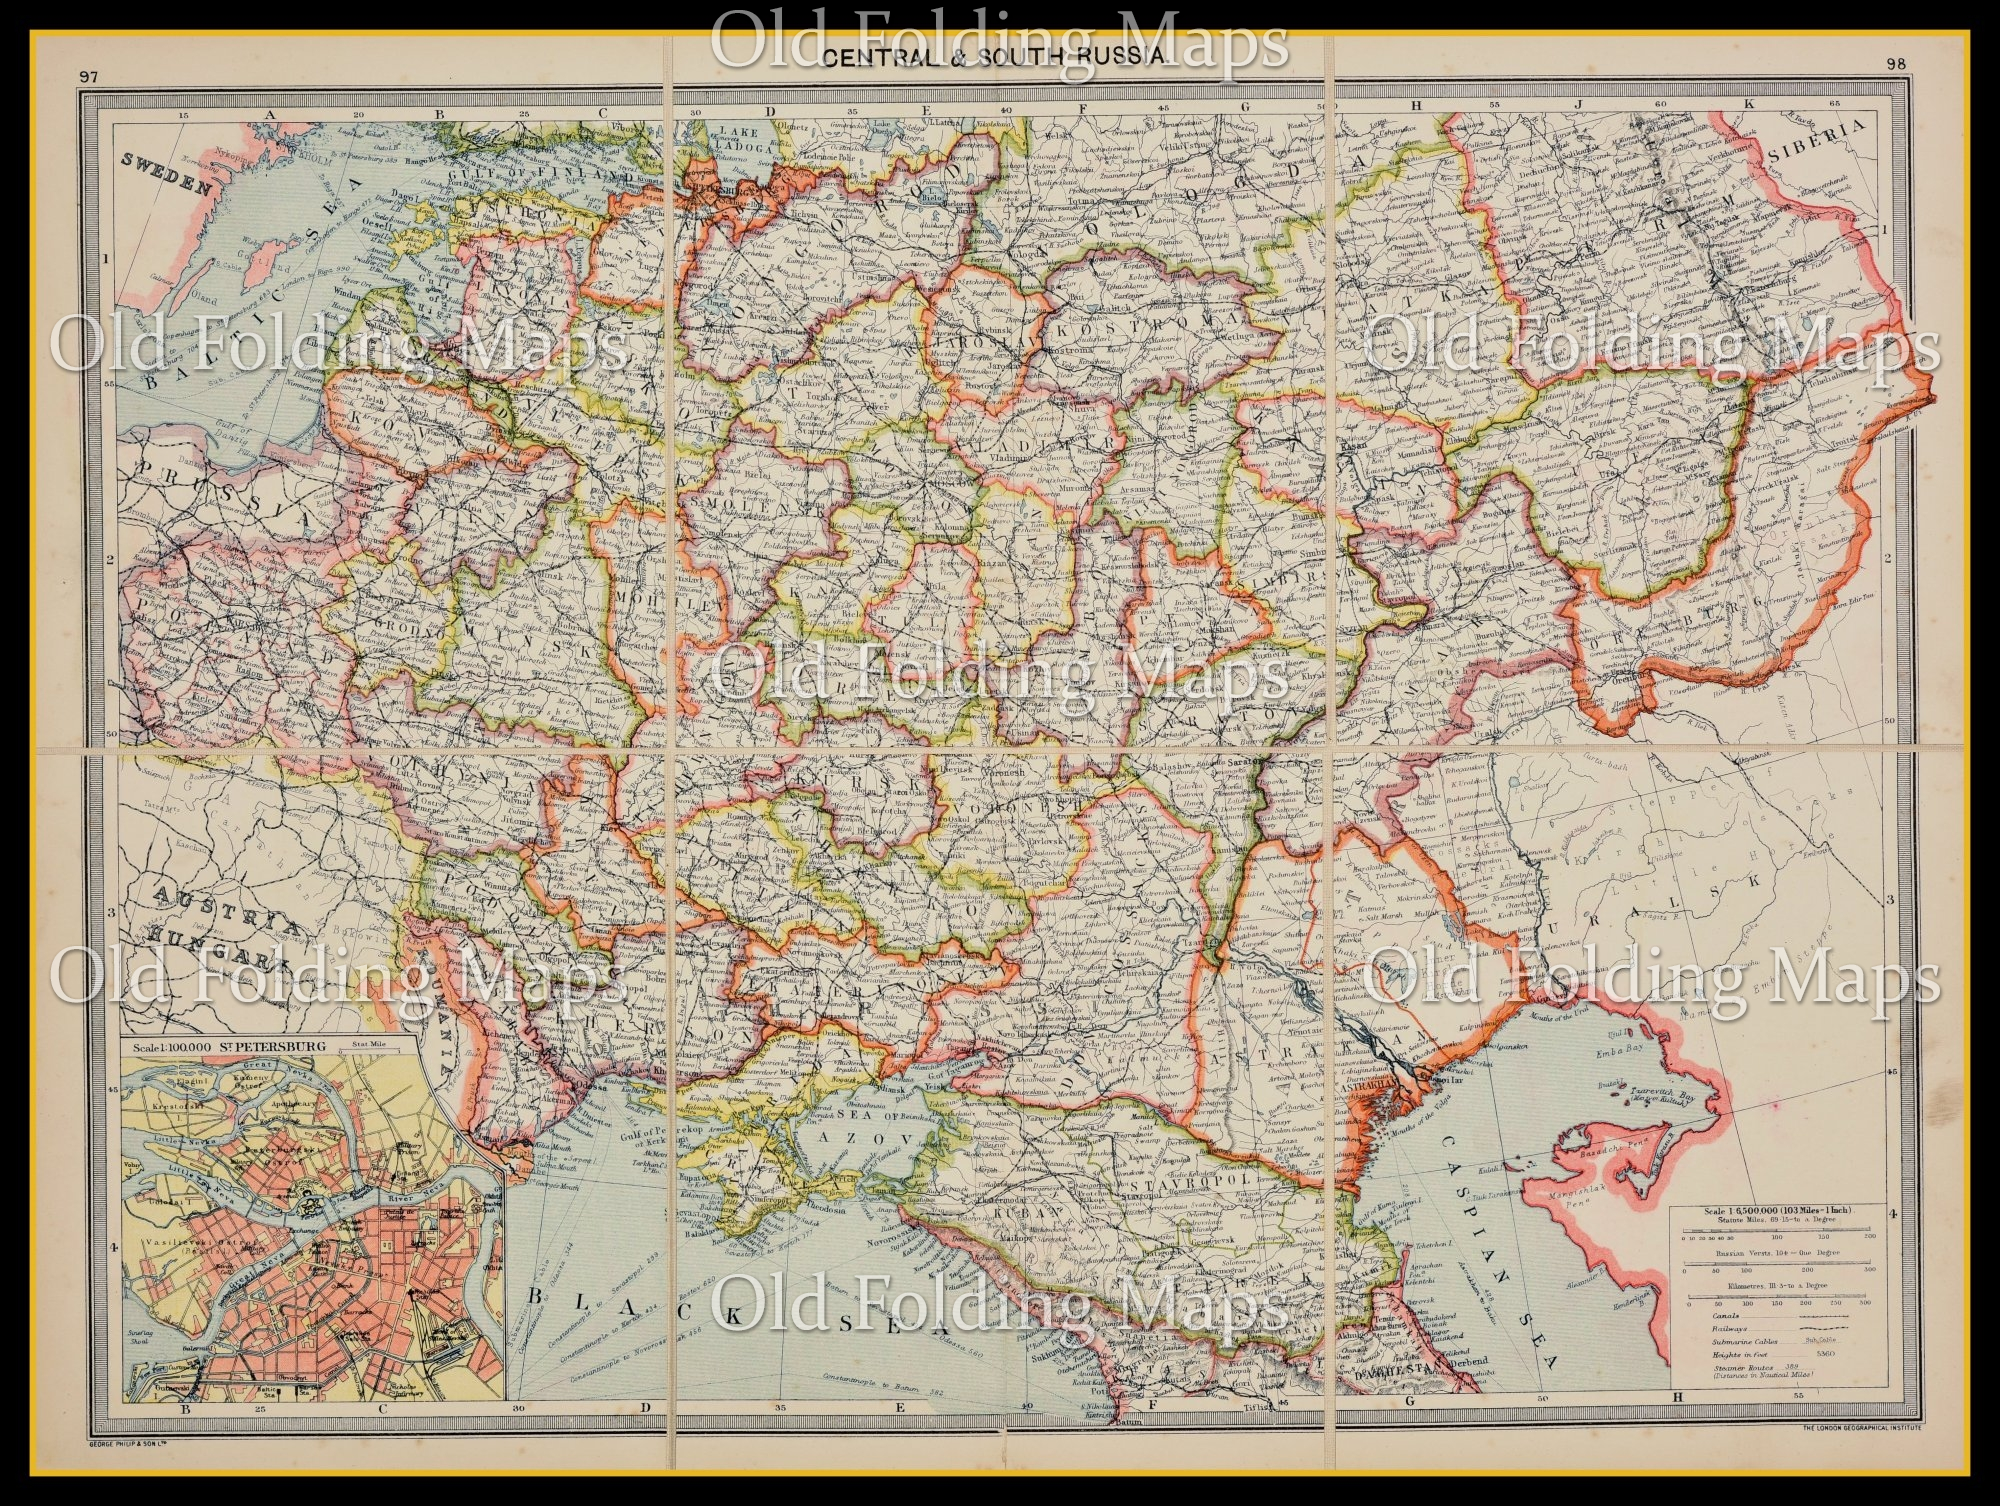 An Antique Map Of Central And South Russia Circa 1900